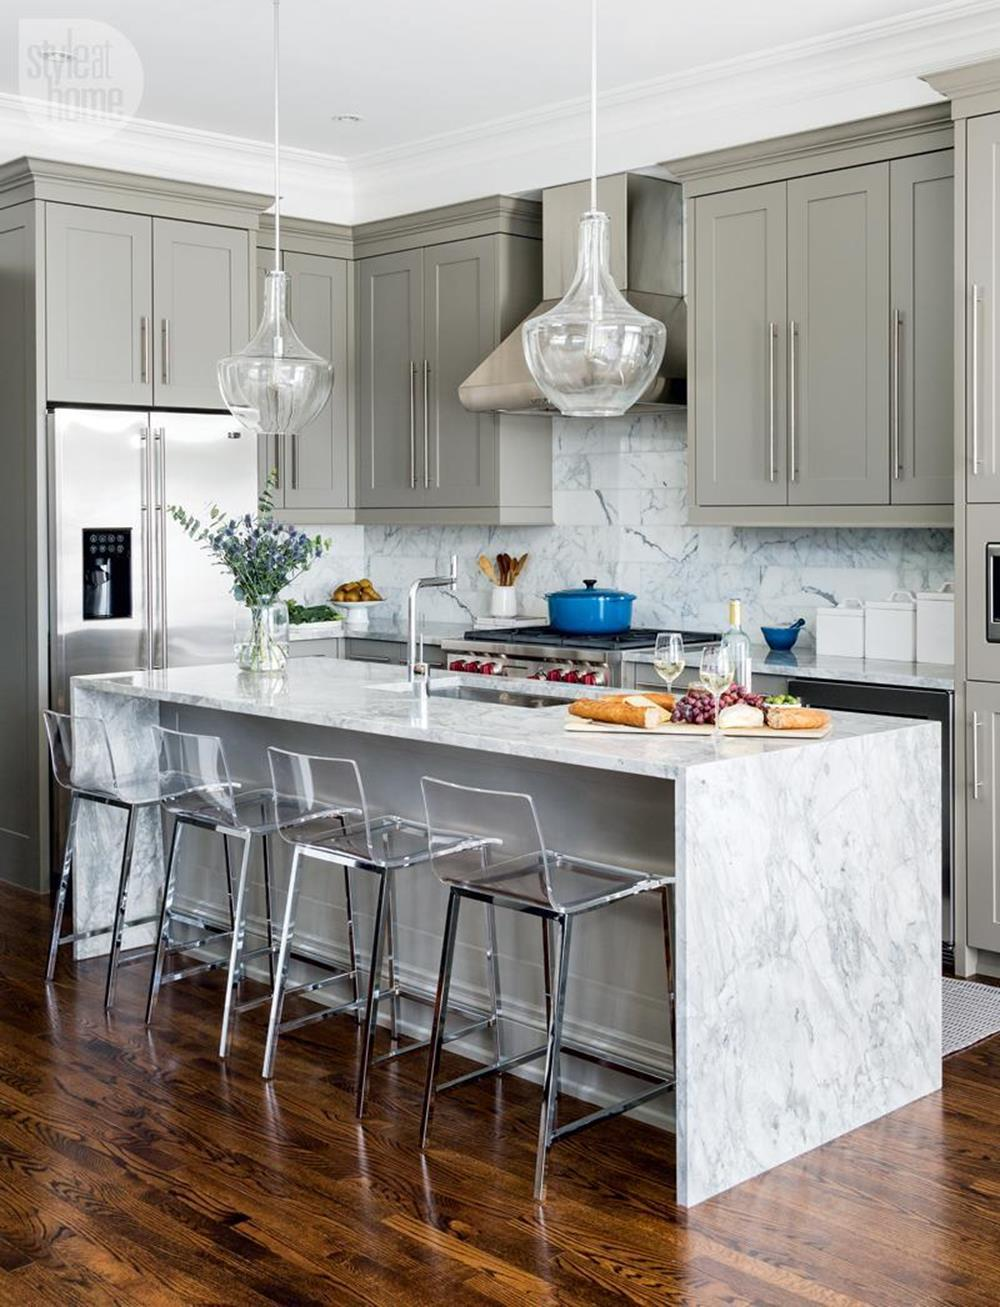 Kitchen Makeover Ideas On A Budget 9